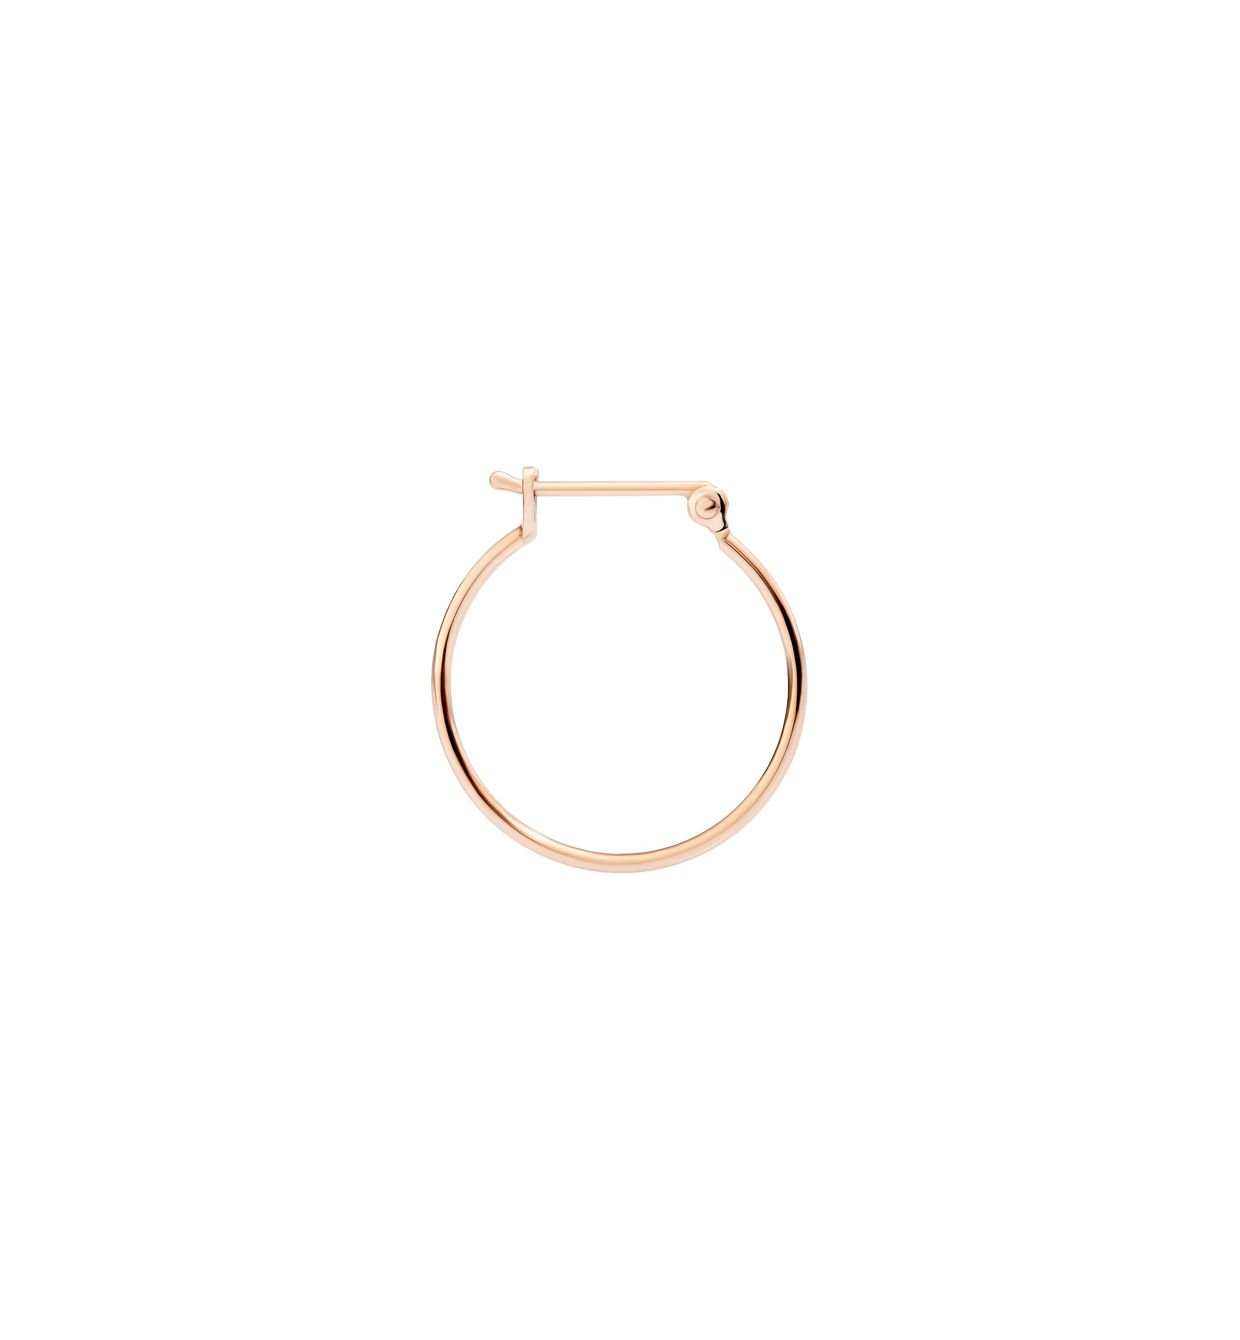 DoDo Bangle Hoop Earring in 9k Rose Gold - small (single) - Orsini Jewellers NZ